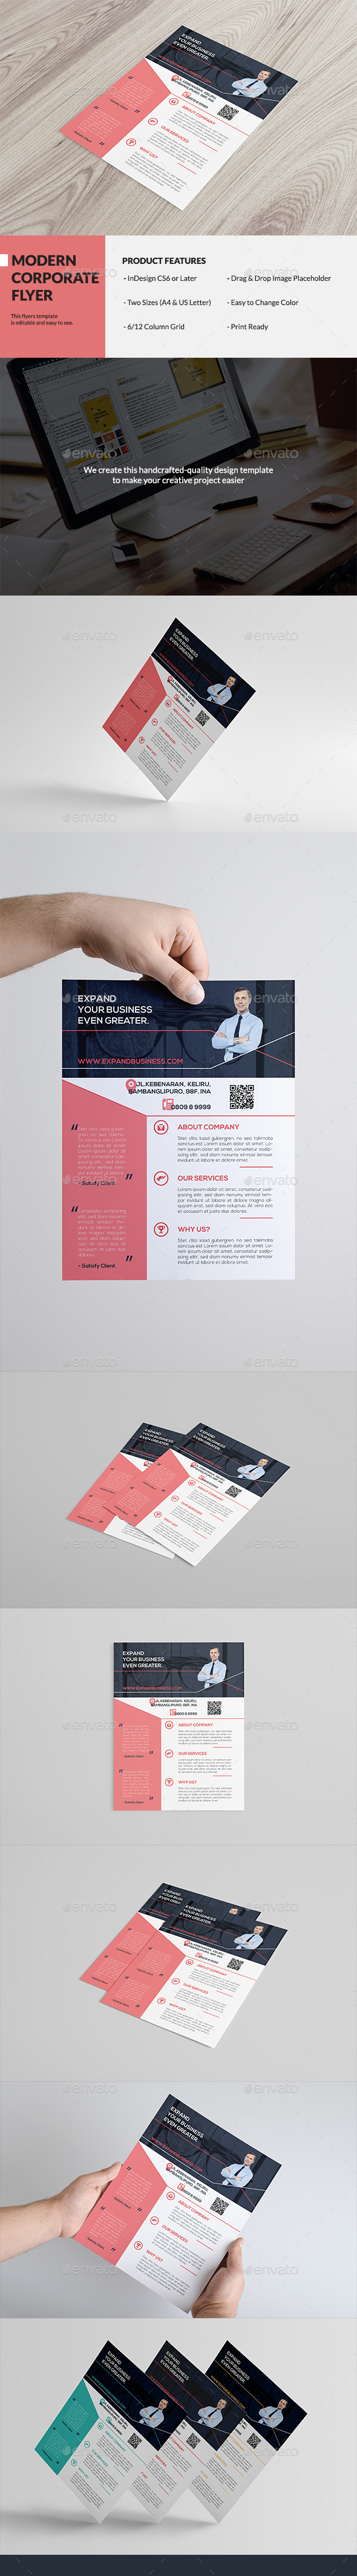 Modern Multipurpose Flyer - Corporate Flyers